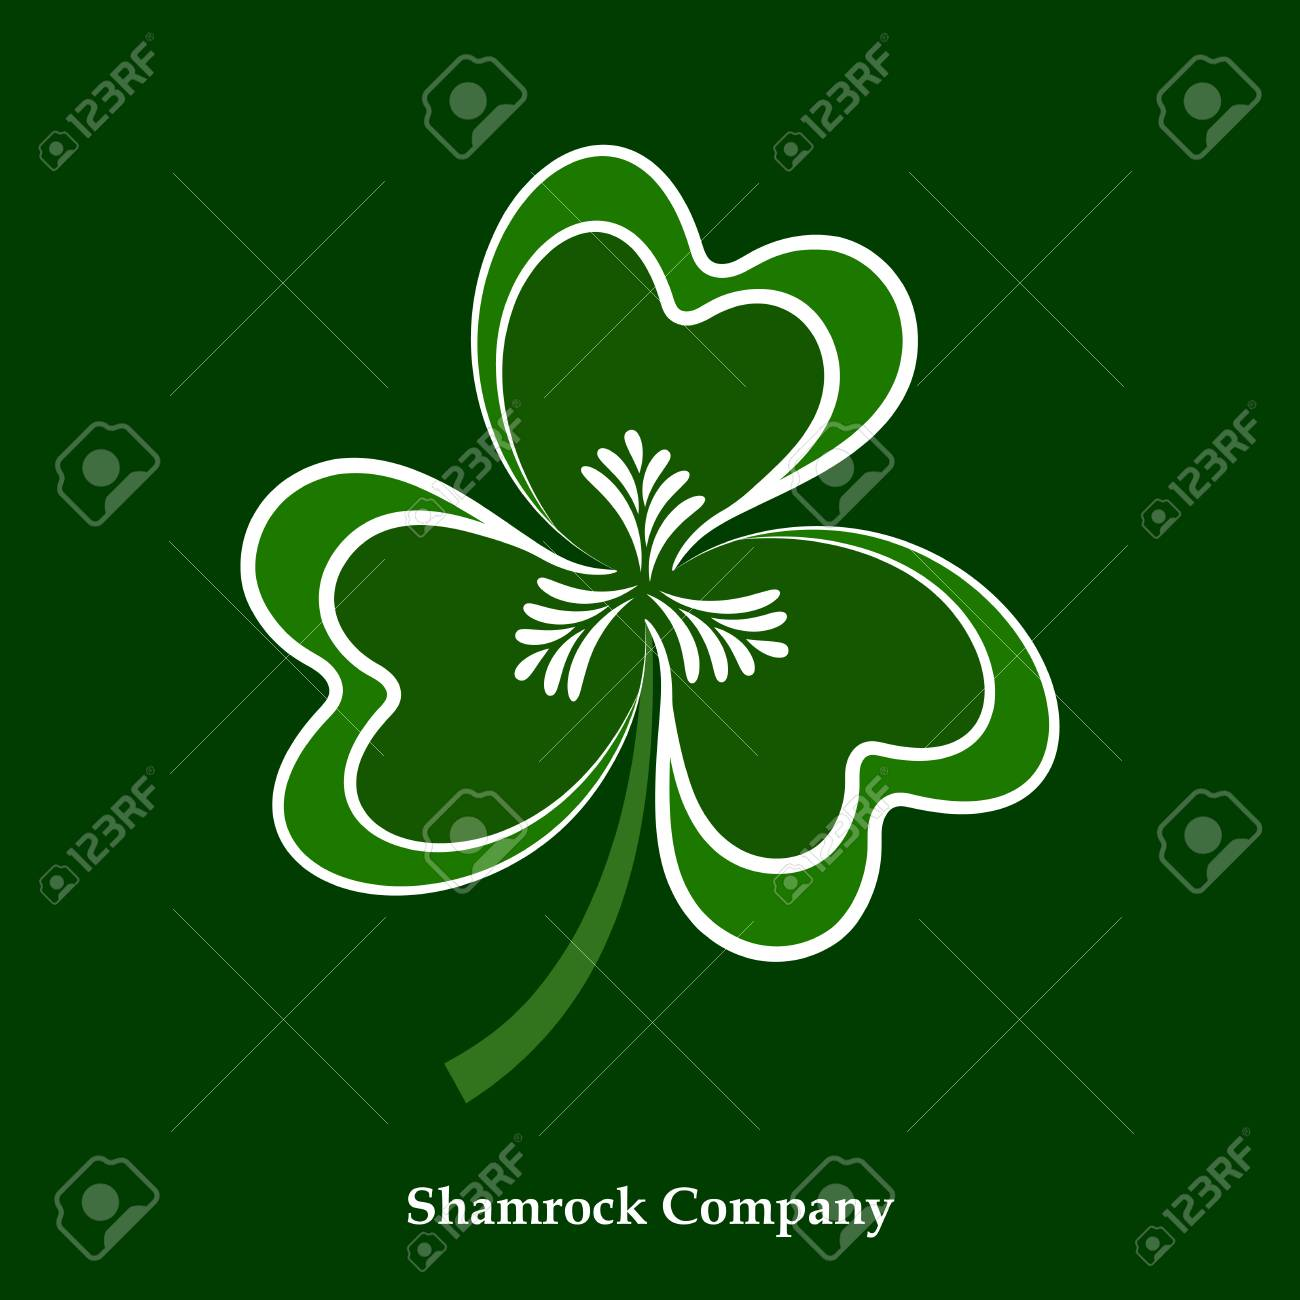 A Vector Green And White Leaf Shamrock Icon Clover Symbol For